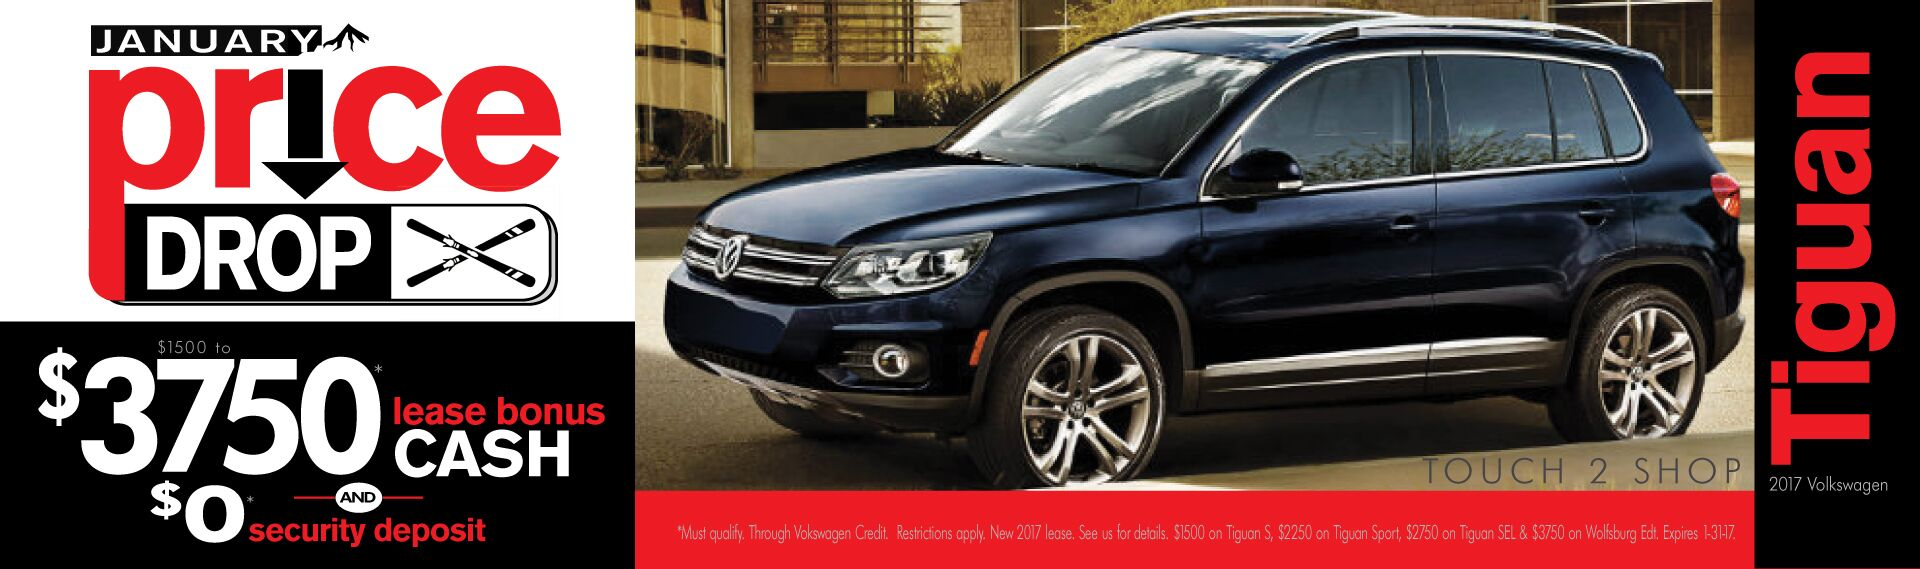 Tiguan January Price Drop